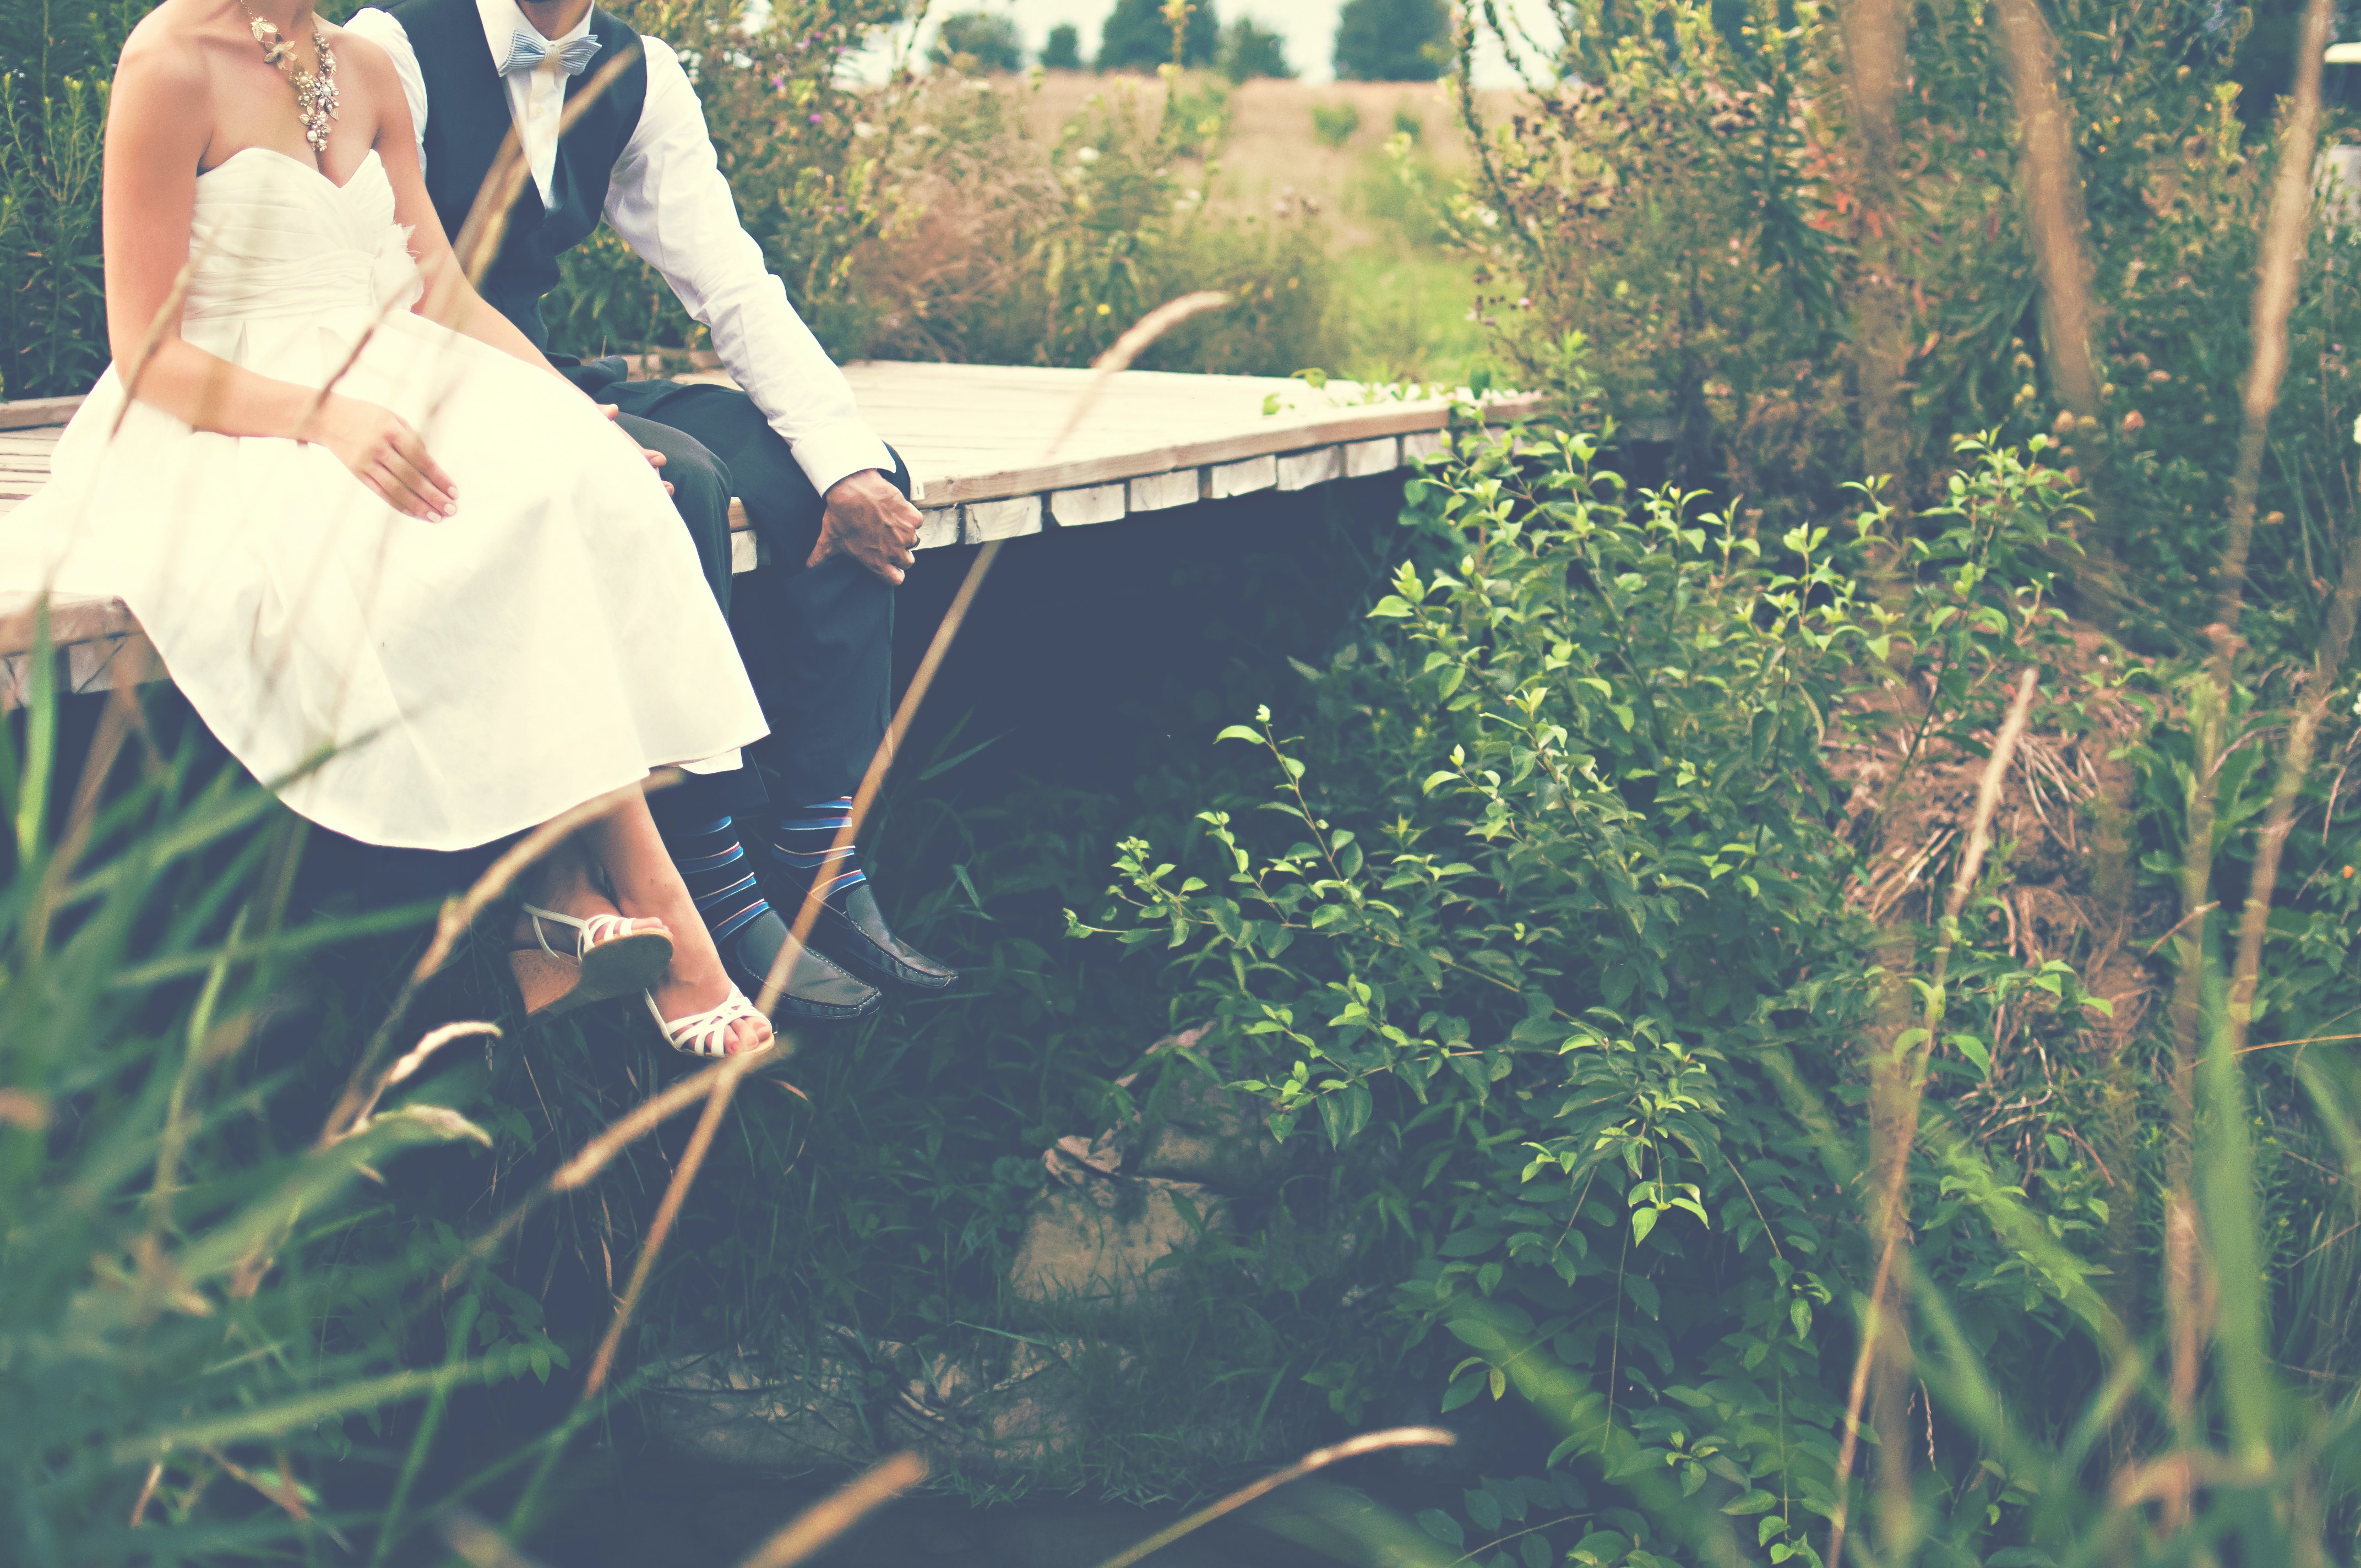 A bridal couple sitting on a wooden footbridge surrounded by green grasses and bushes